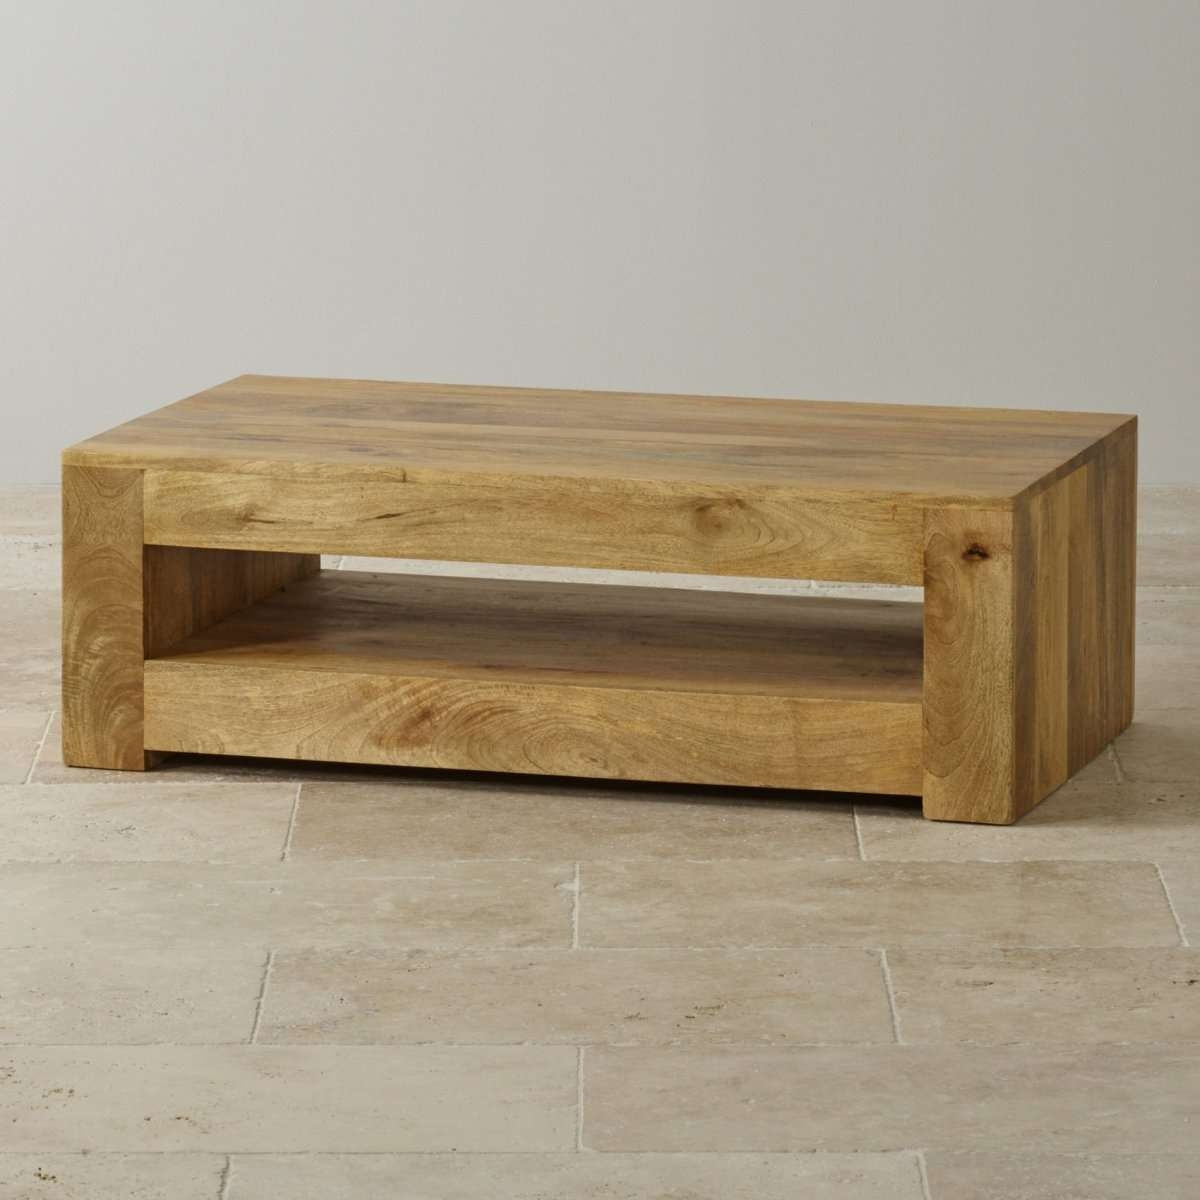 Oak Furniture Land In Favorite Oak Furniture Coffee Tables (Gallery 5 of 20)